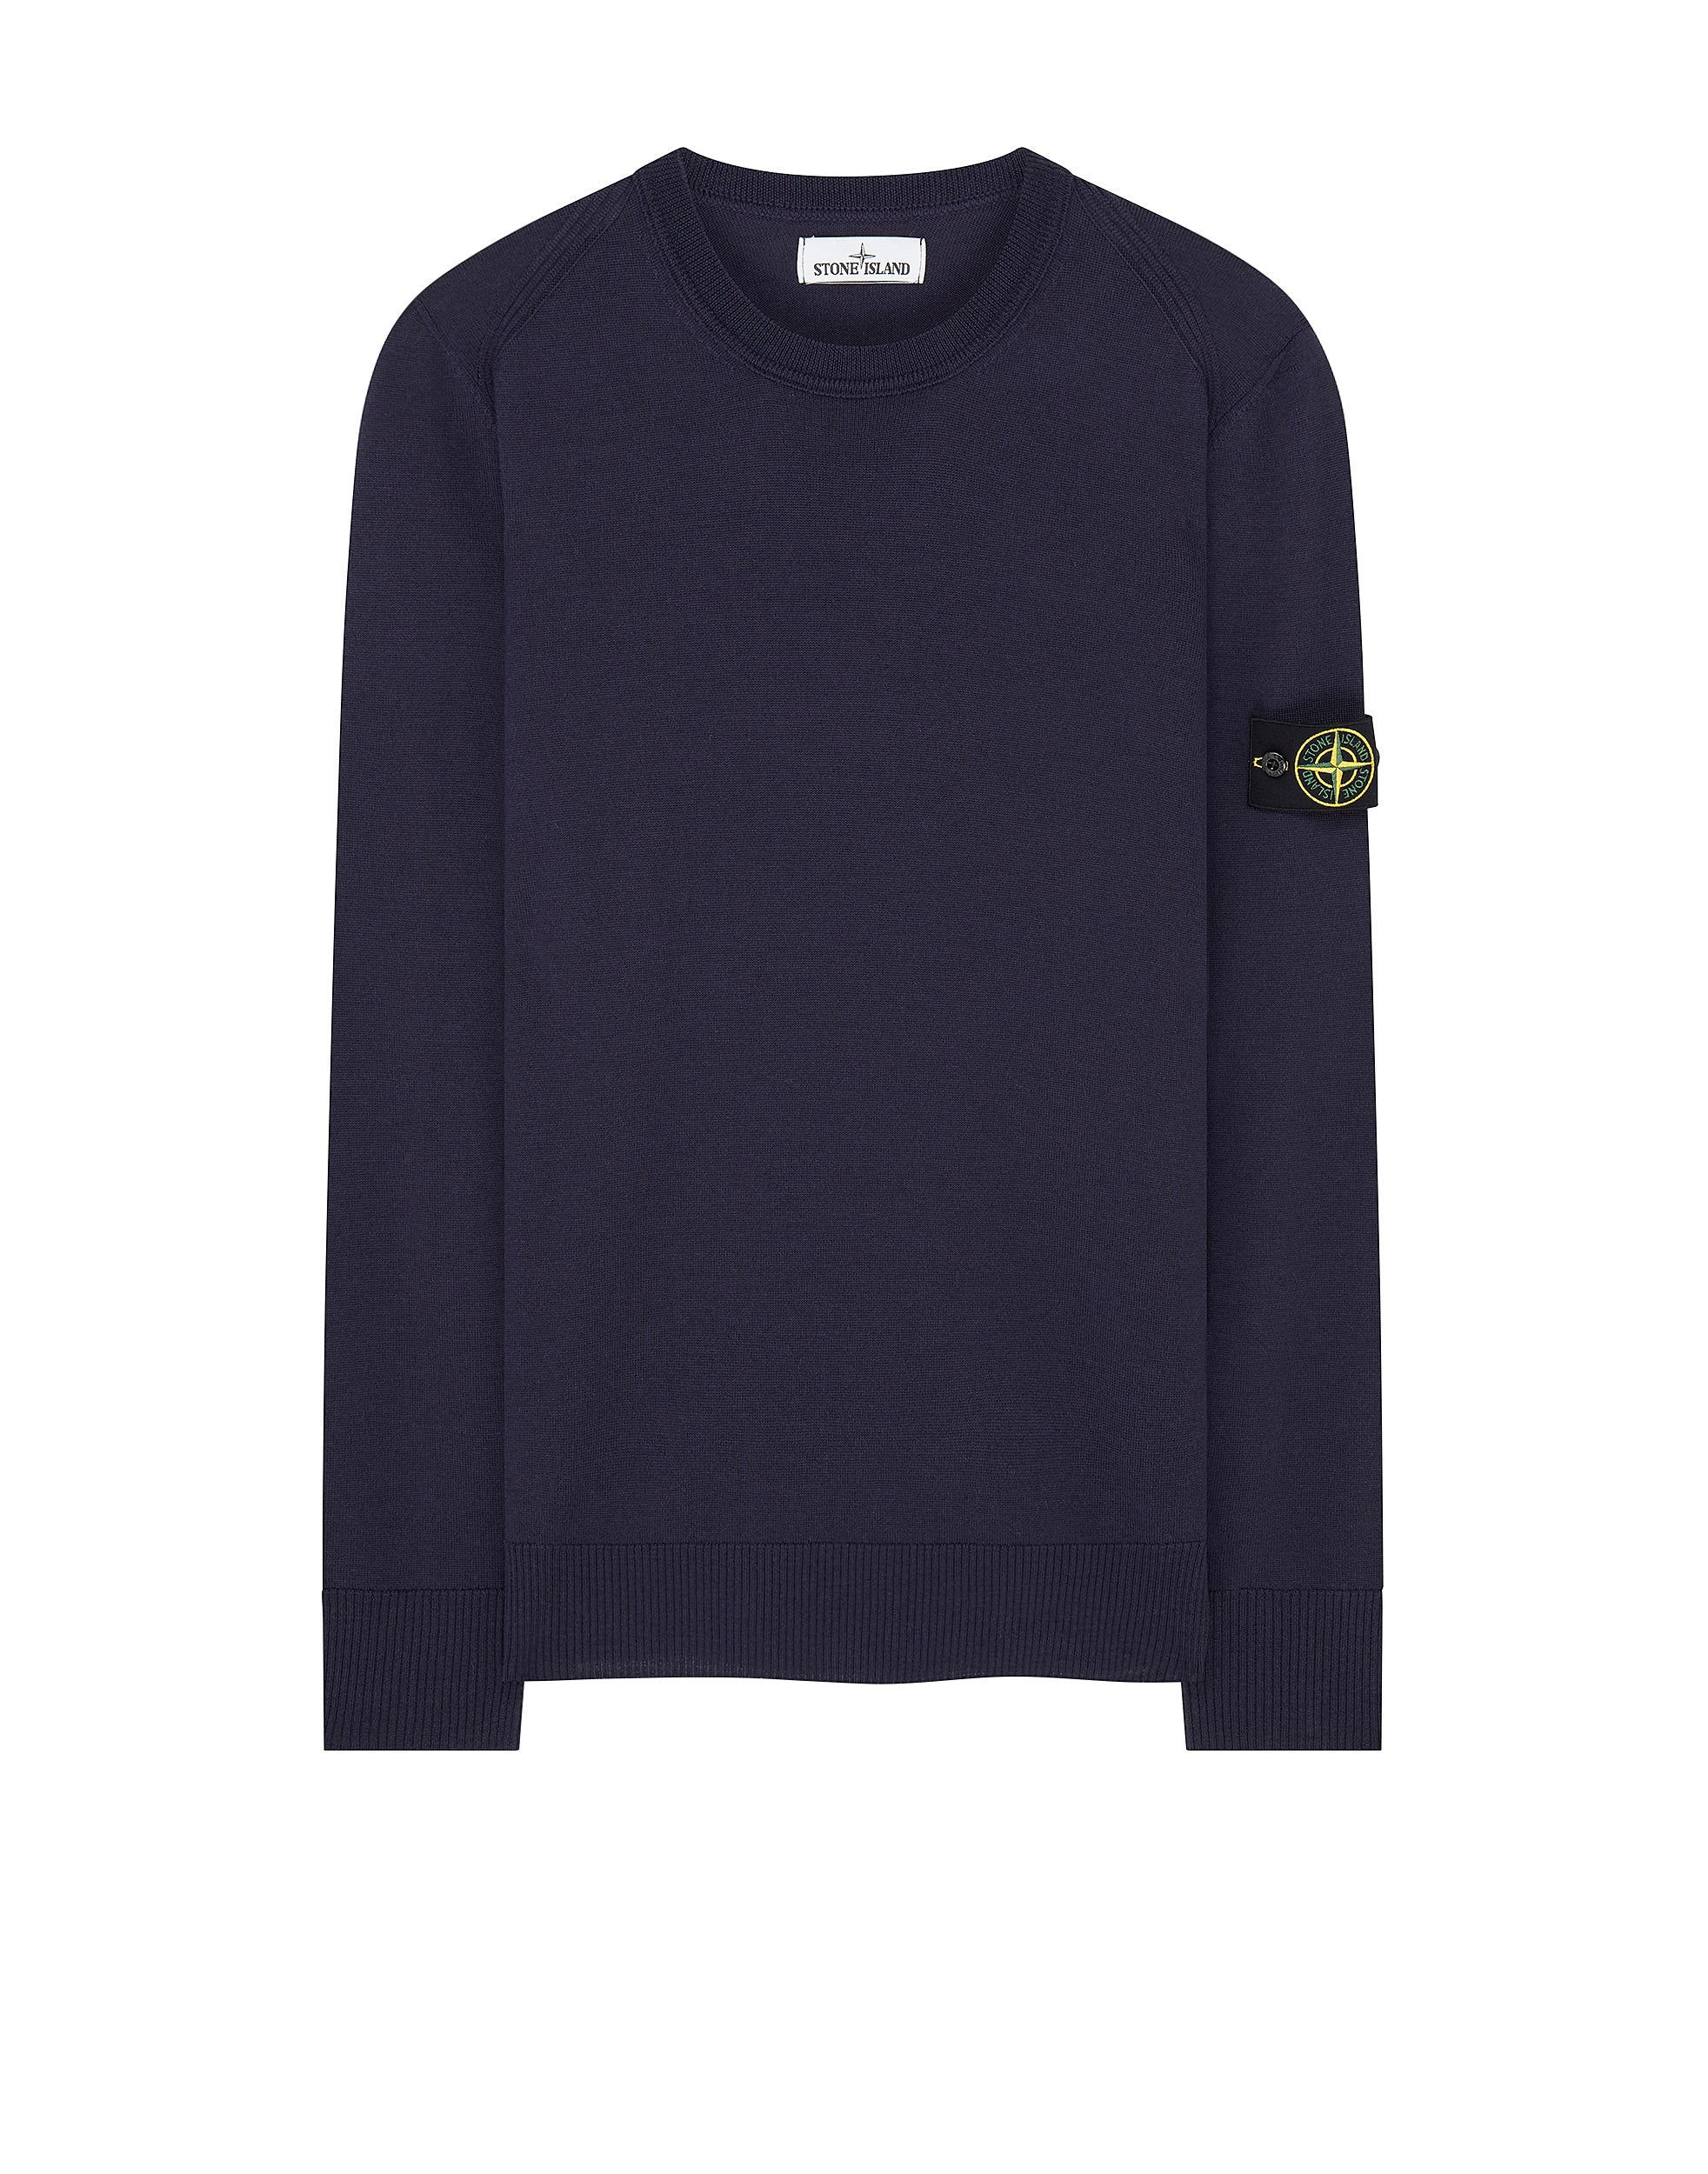 524C4 Crewneck Wool Knit in Ink